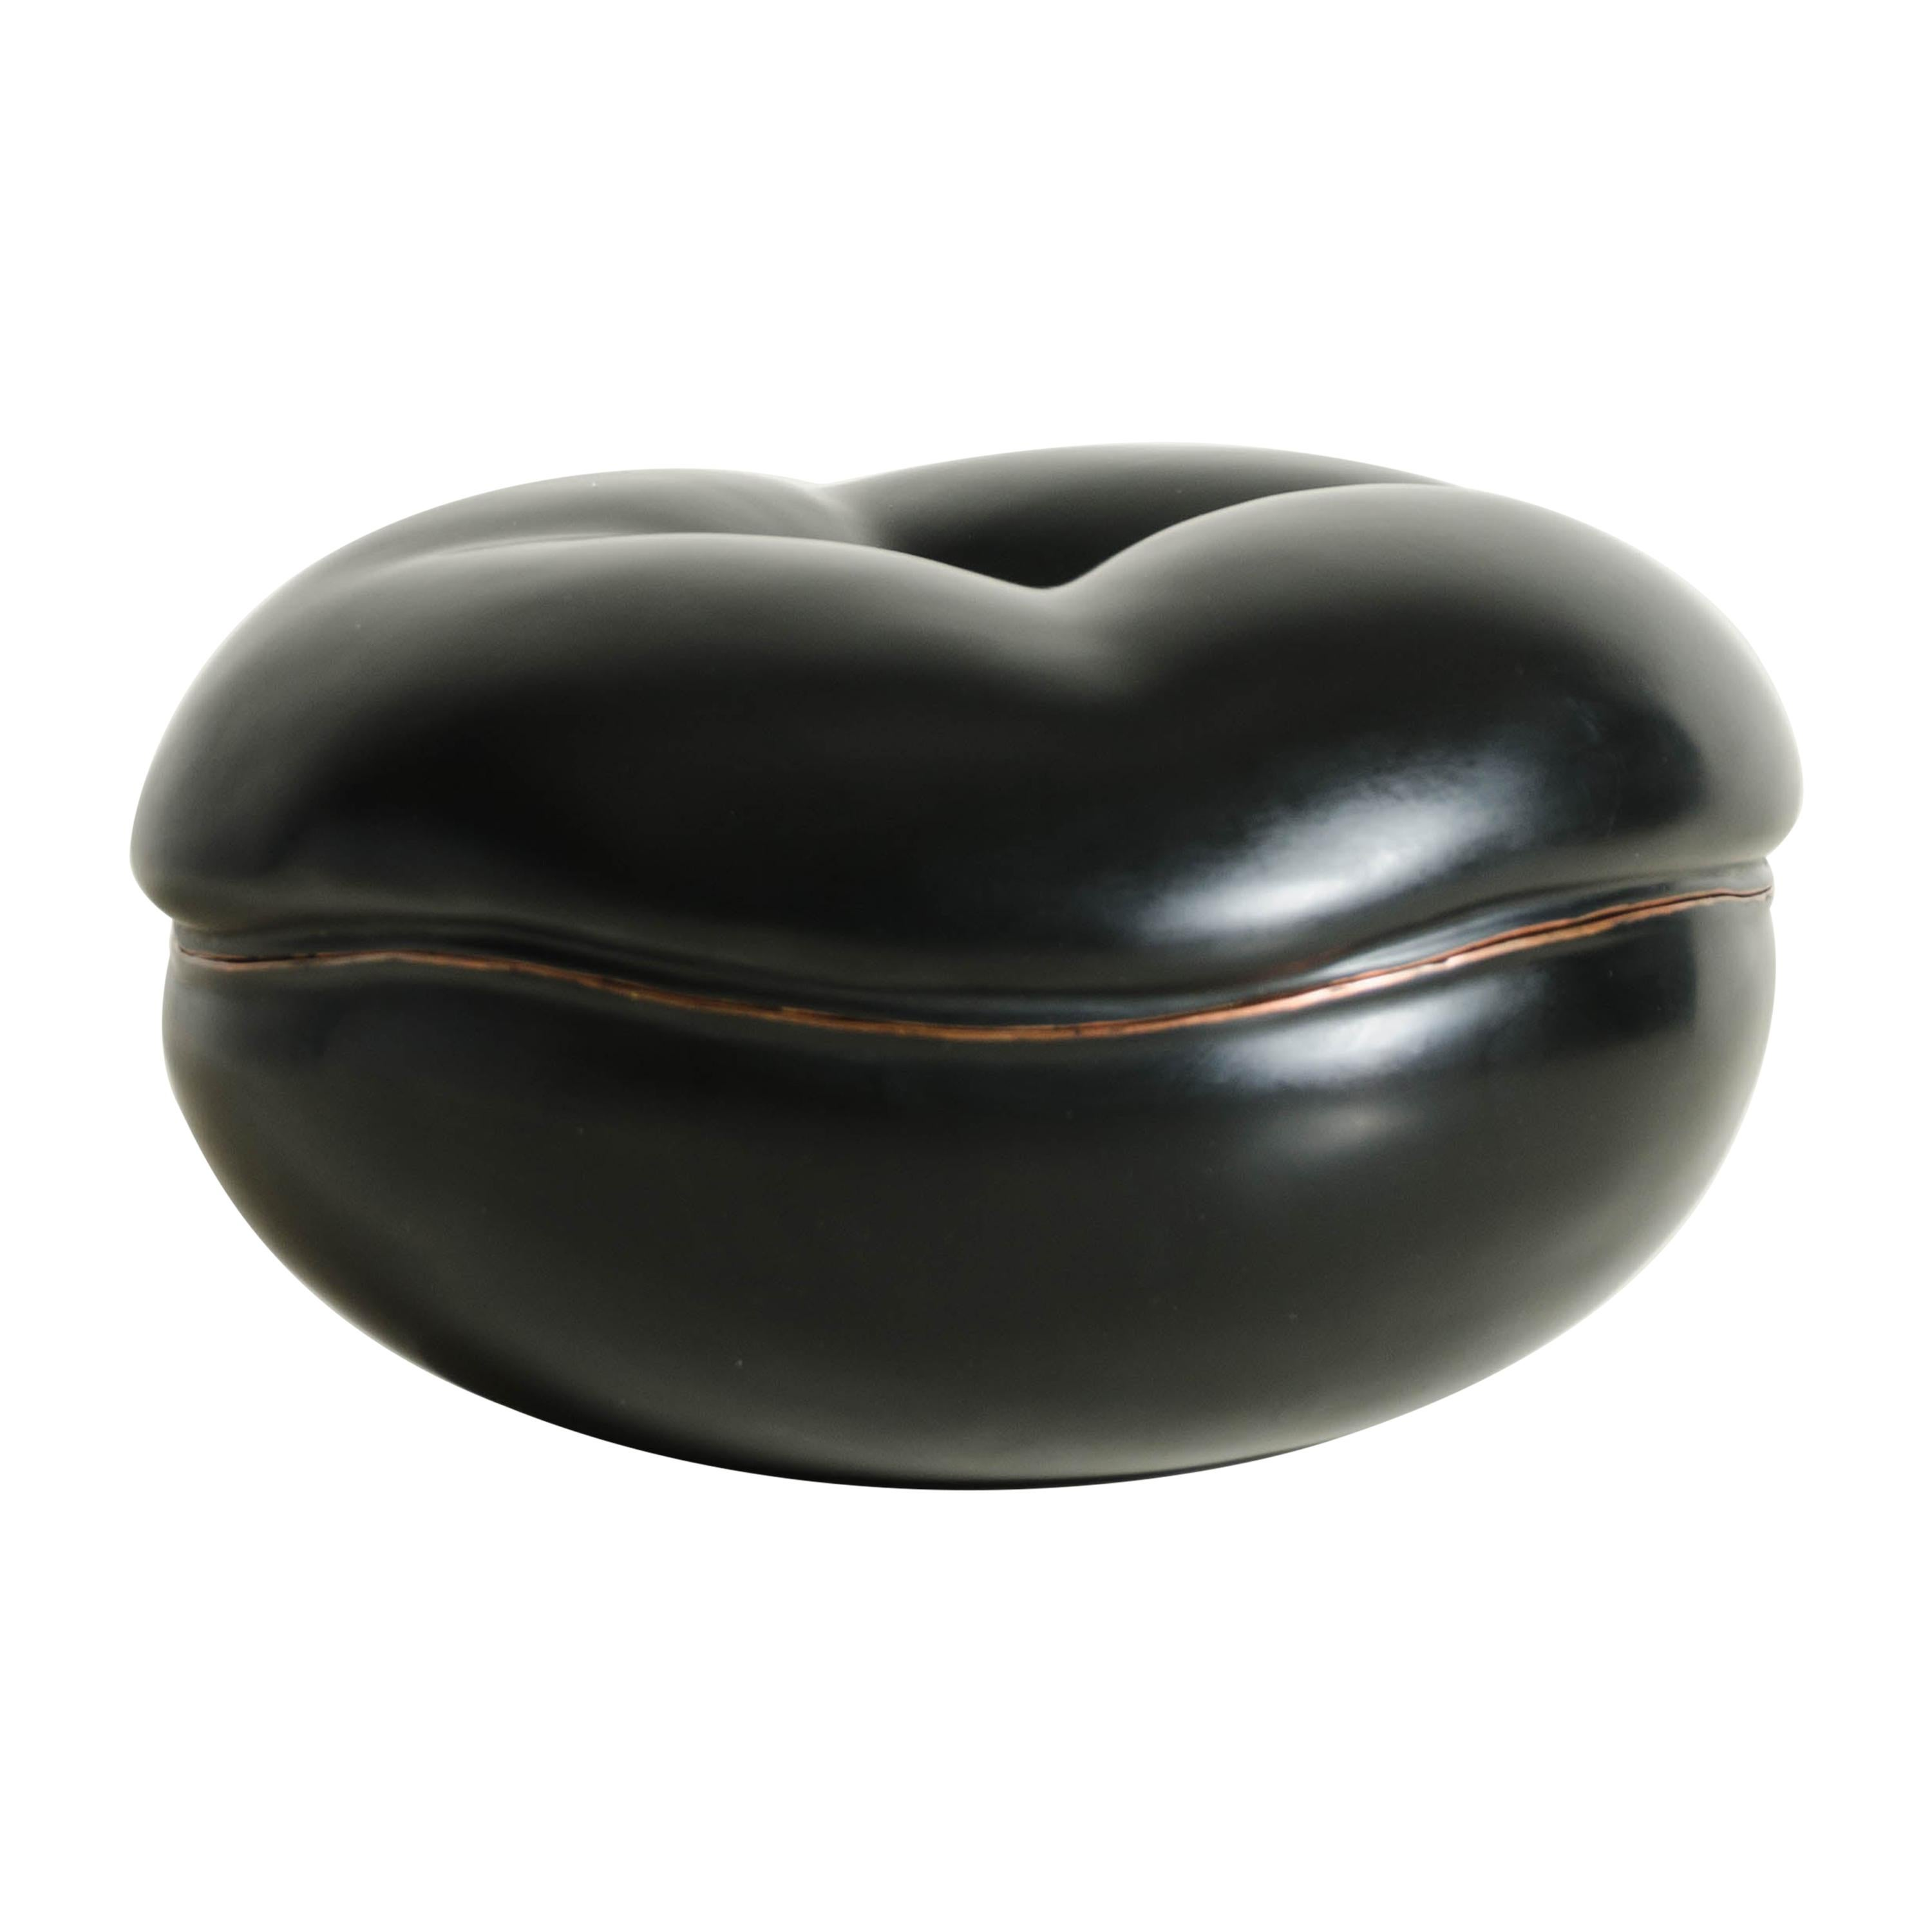 Persimmon Box in Black Lacquer by Robert Kuo, Limited Edition